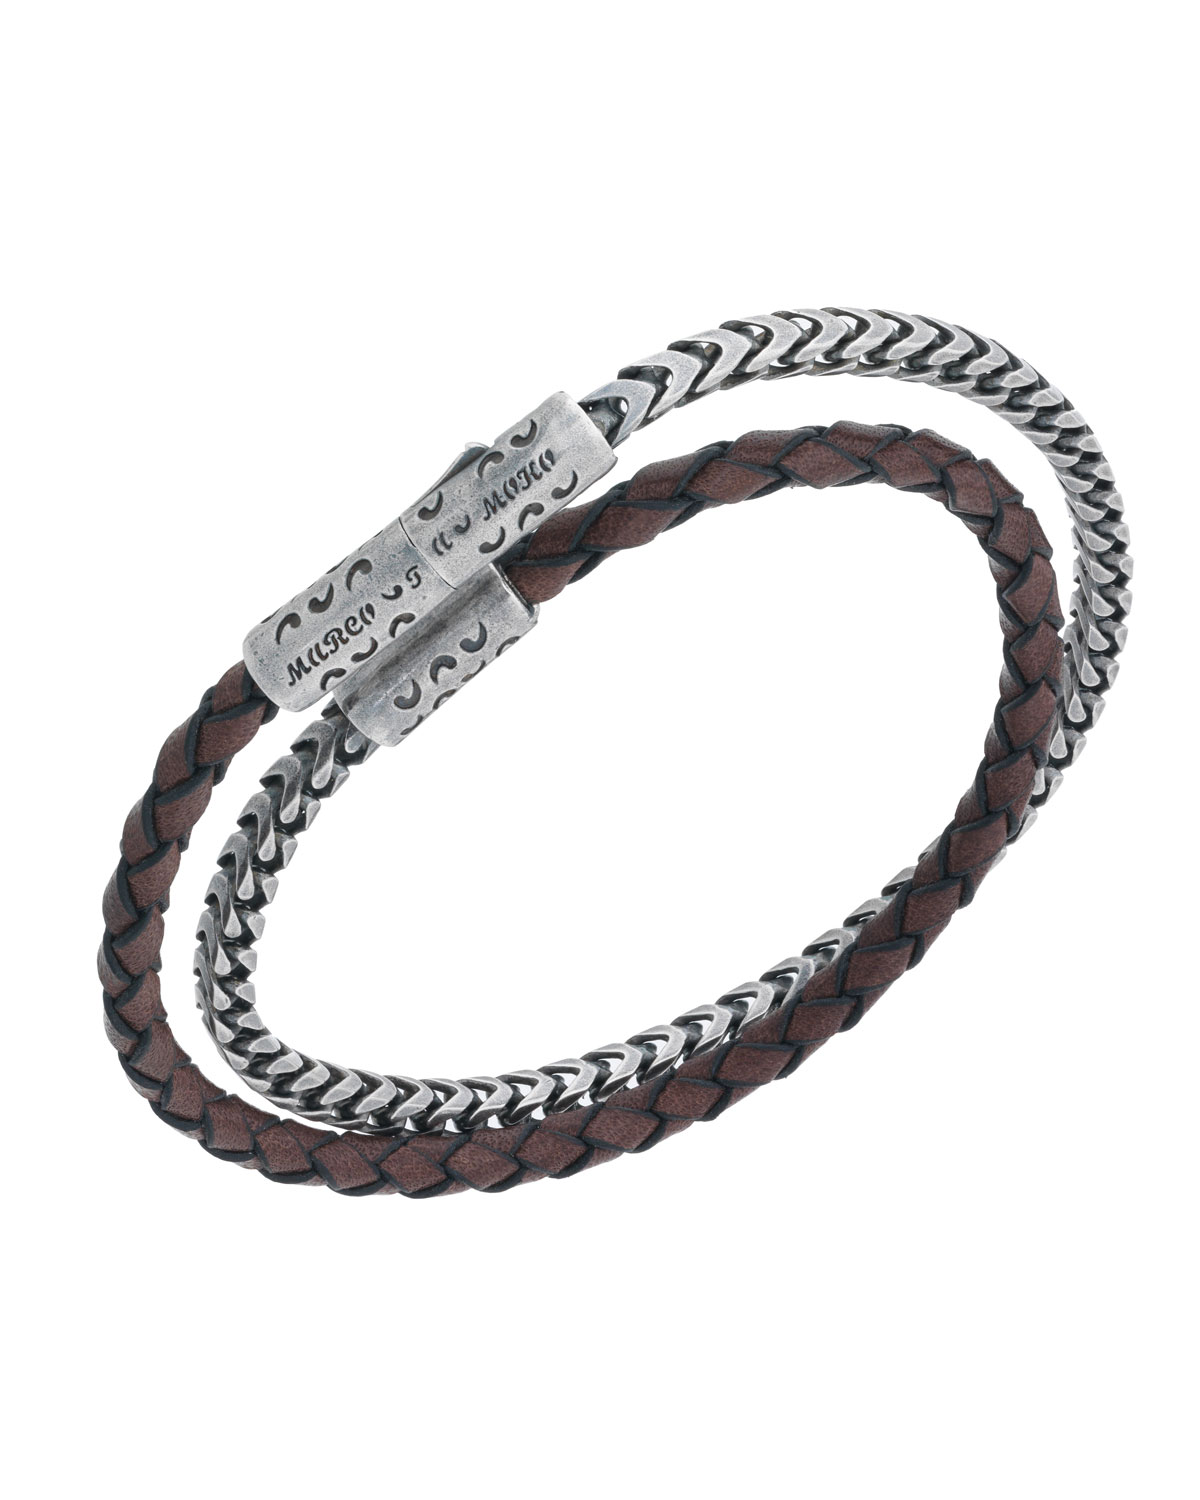 MARCO DAL MASO MEN'S LASH STERLING SILVER & LEATHER WRAP BRACELET